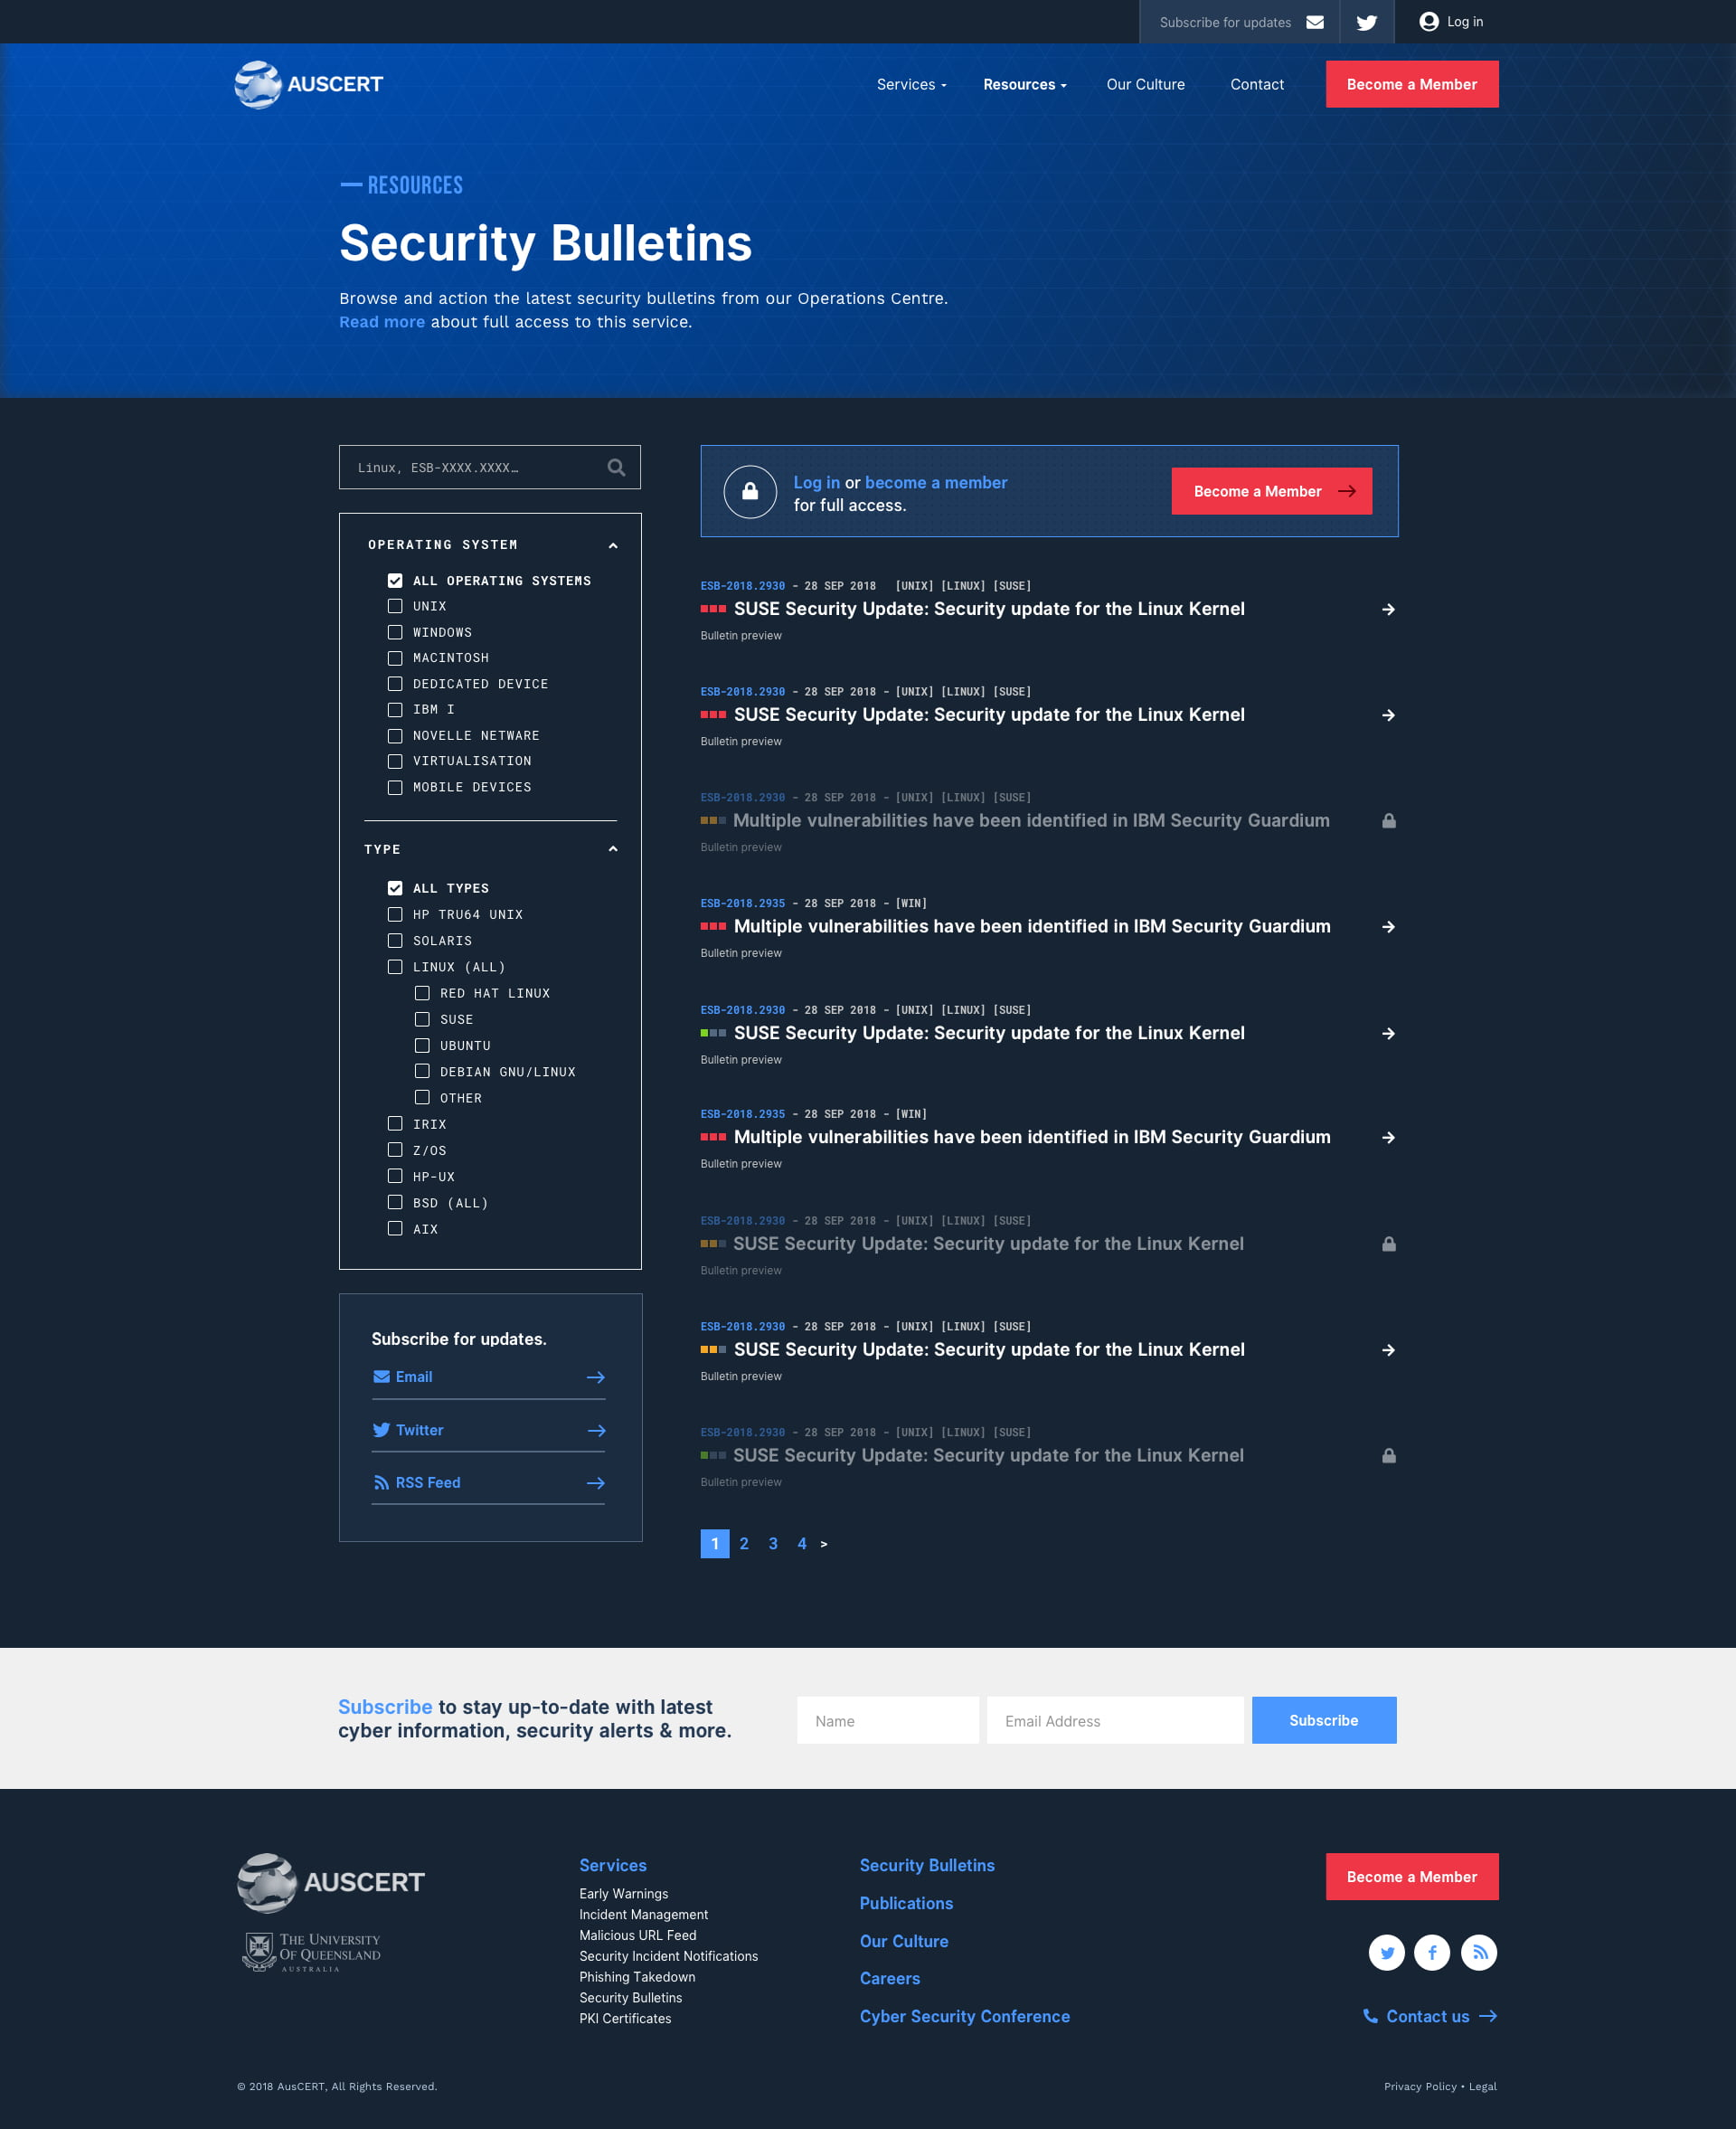 AusCERT – Security Bulletins Filtering